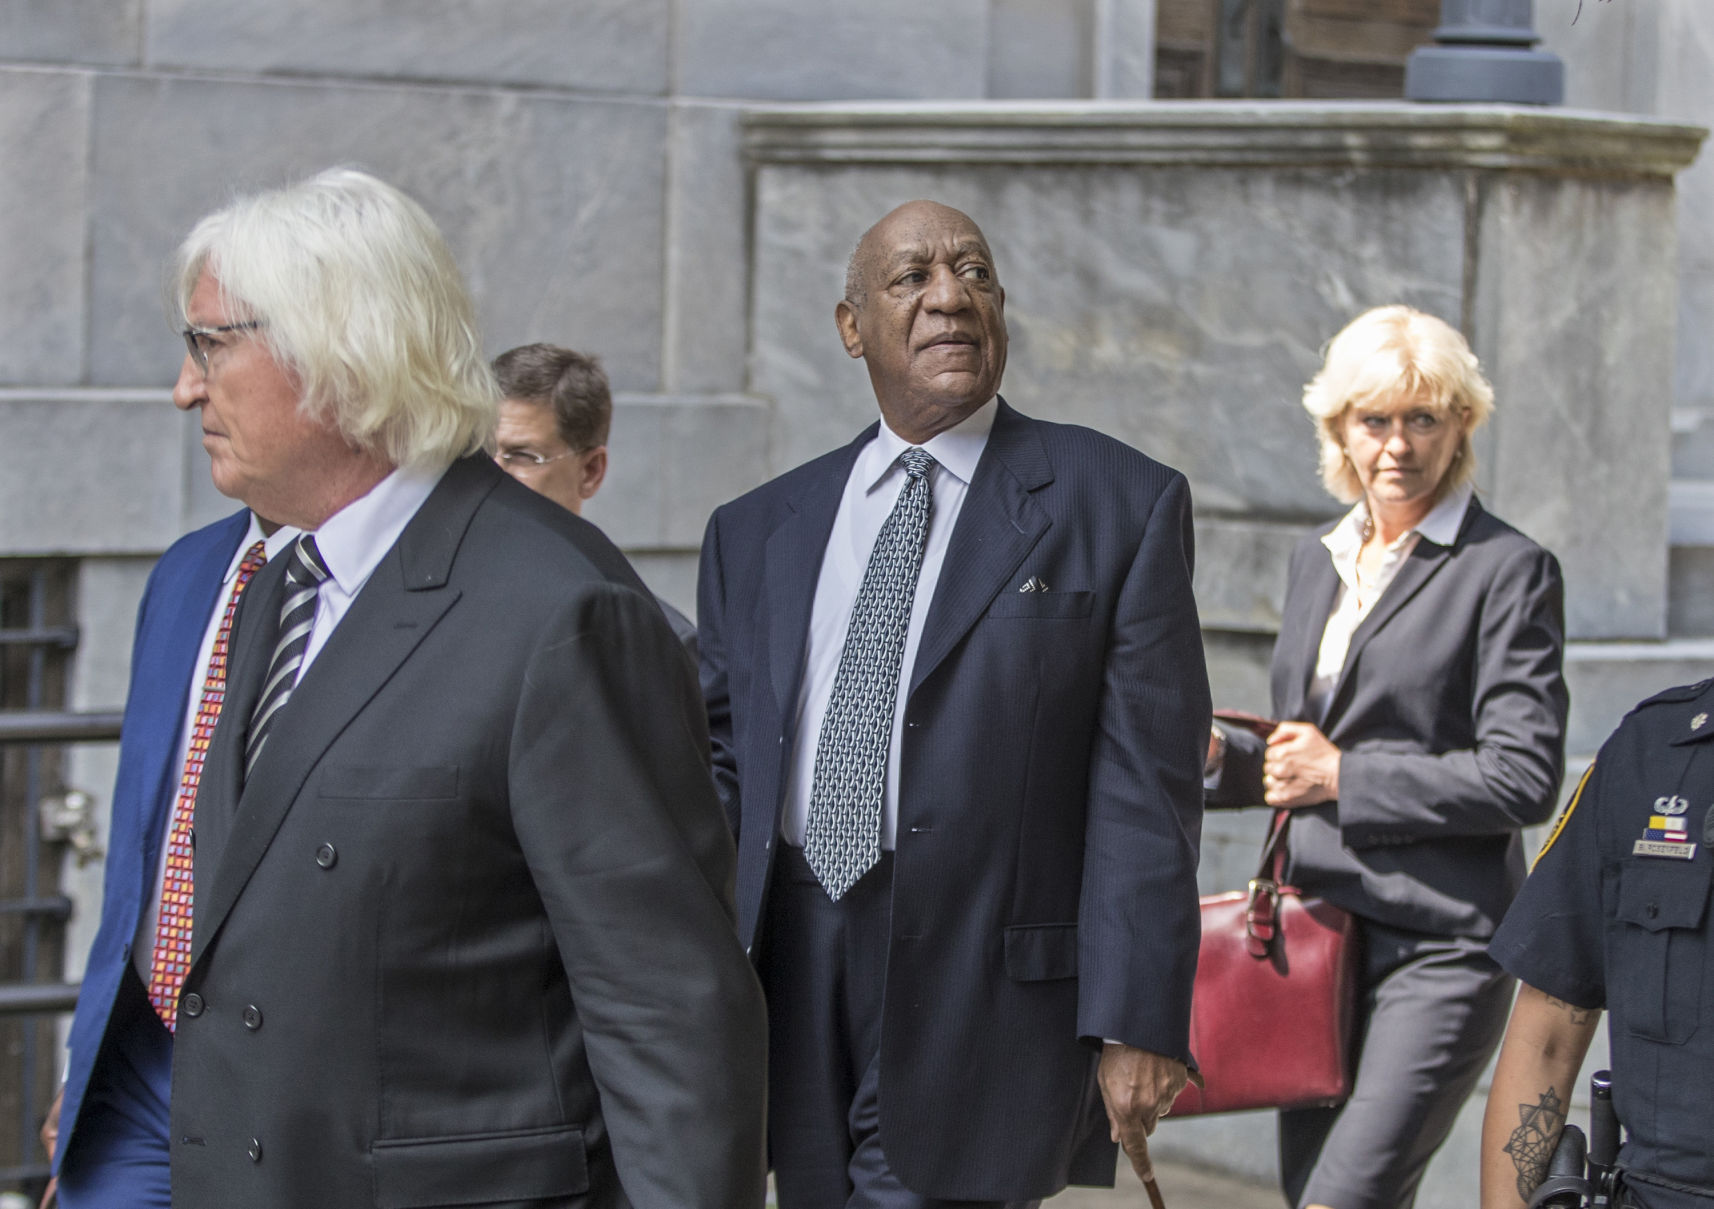 The former lawyer of Michael Jackson will defend Bill Cosby